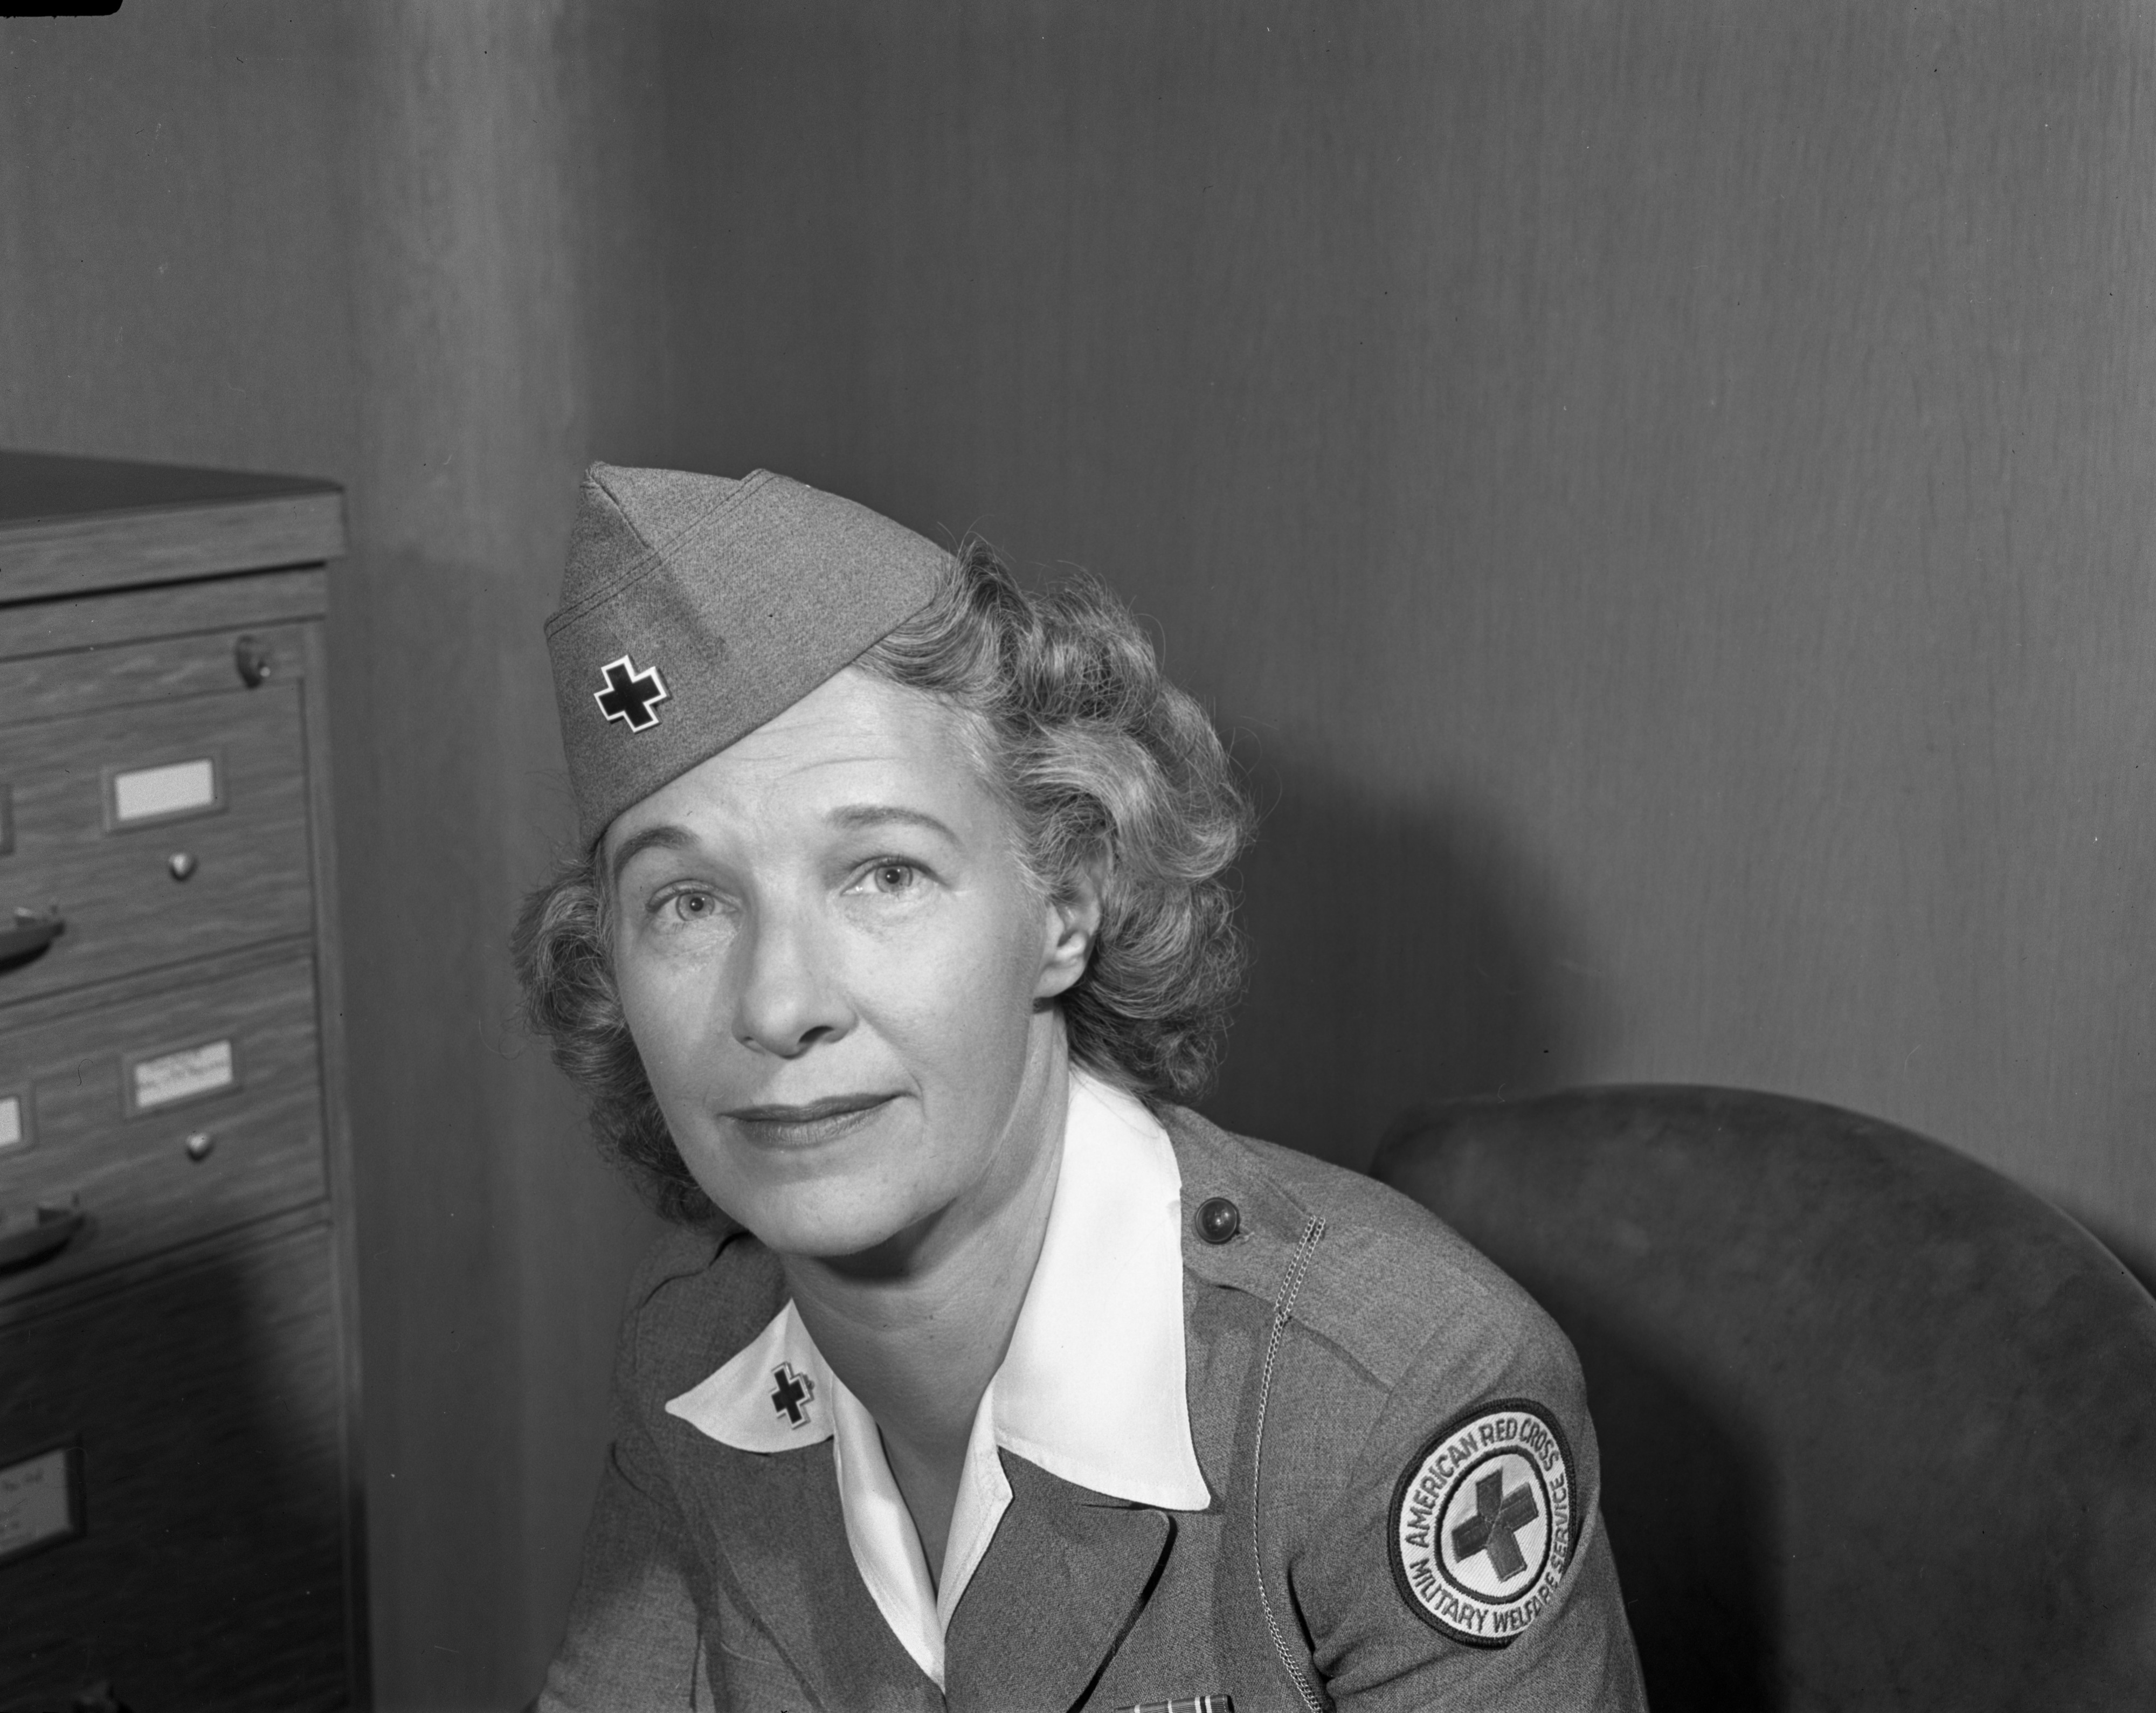 Mrs. Narcissa Perrin of the overseas Red Cross, August 1945 image